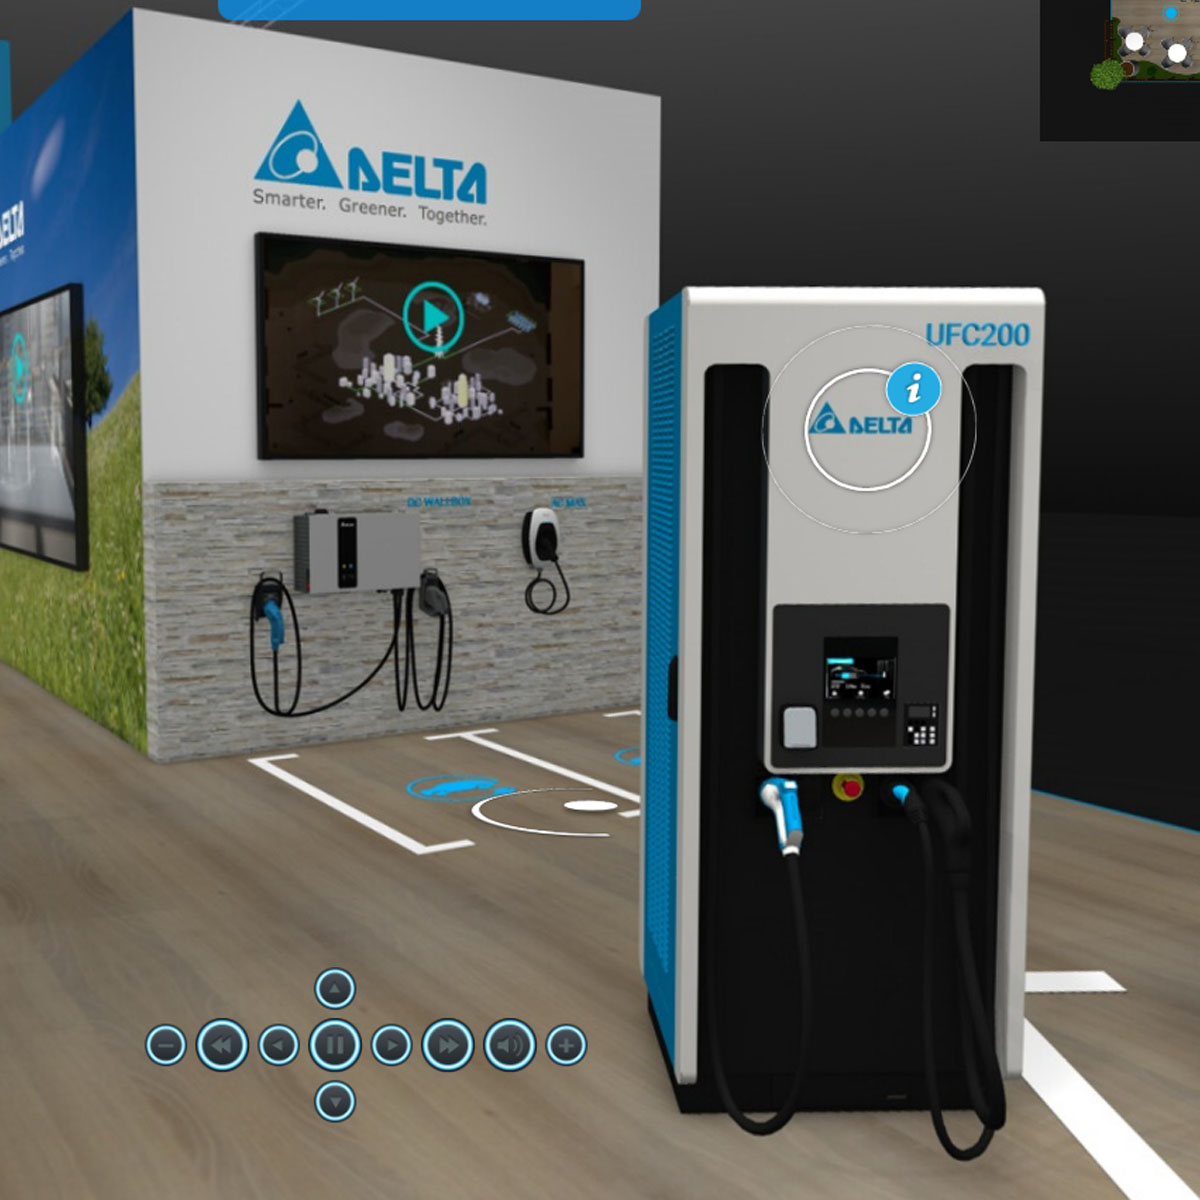 Visit @DeltaEMEAs virtual showroom to view their latest product innovations for solar and emobility: bit.ly/3fDKh4T, and contact us for a quote: bit.ly/30RnuyC #rubicon #renewableenergy #evcharger #deltaelectronics